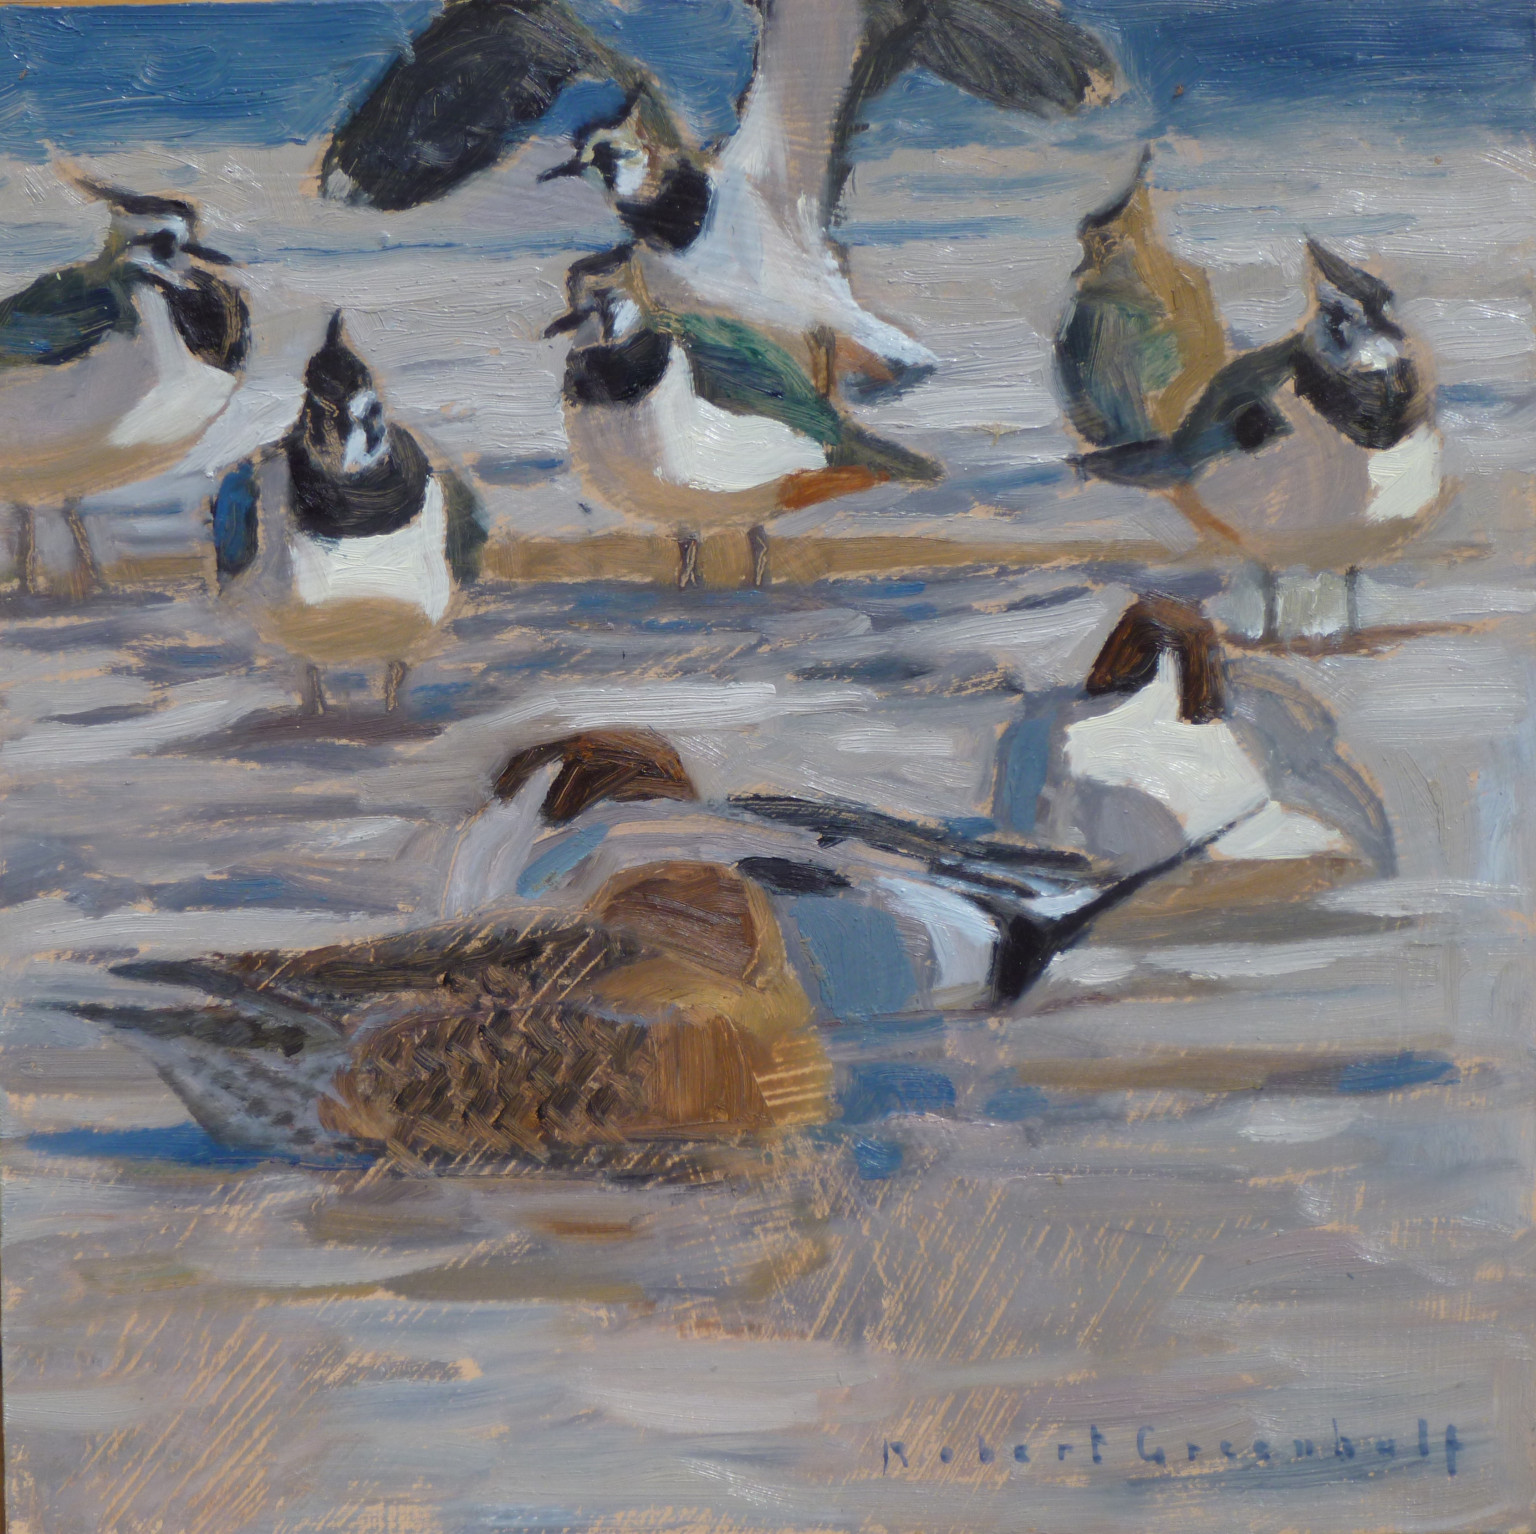 Robert Greenhalf, Pintails and Lapwings